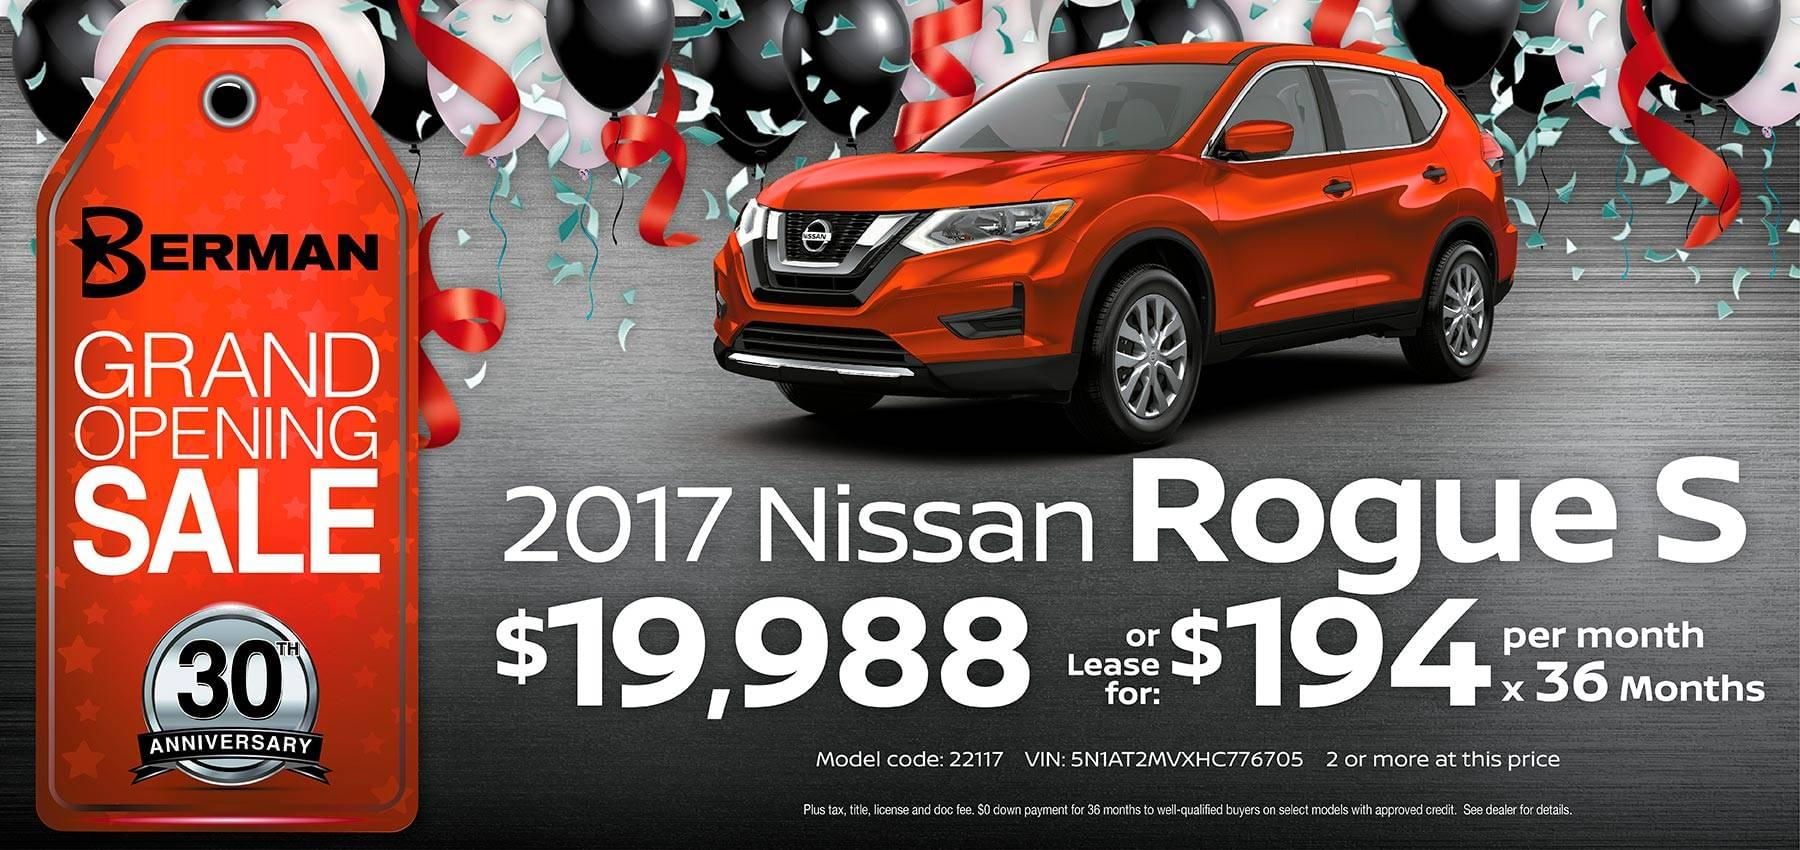 2017 Nissan Rogue Berman Nissan of Chicago February Grand Opening Sale